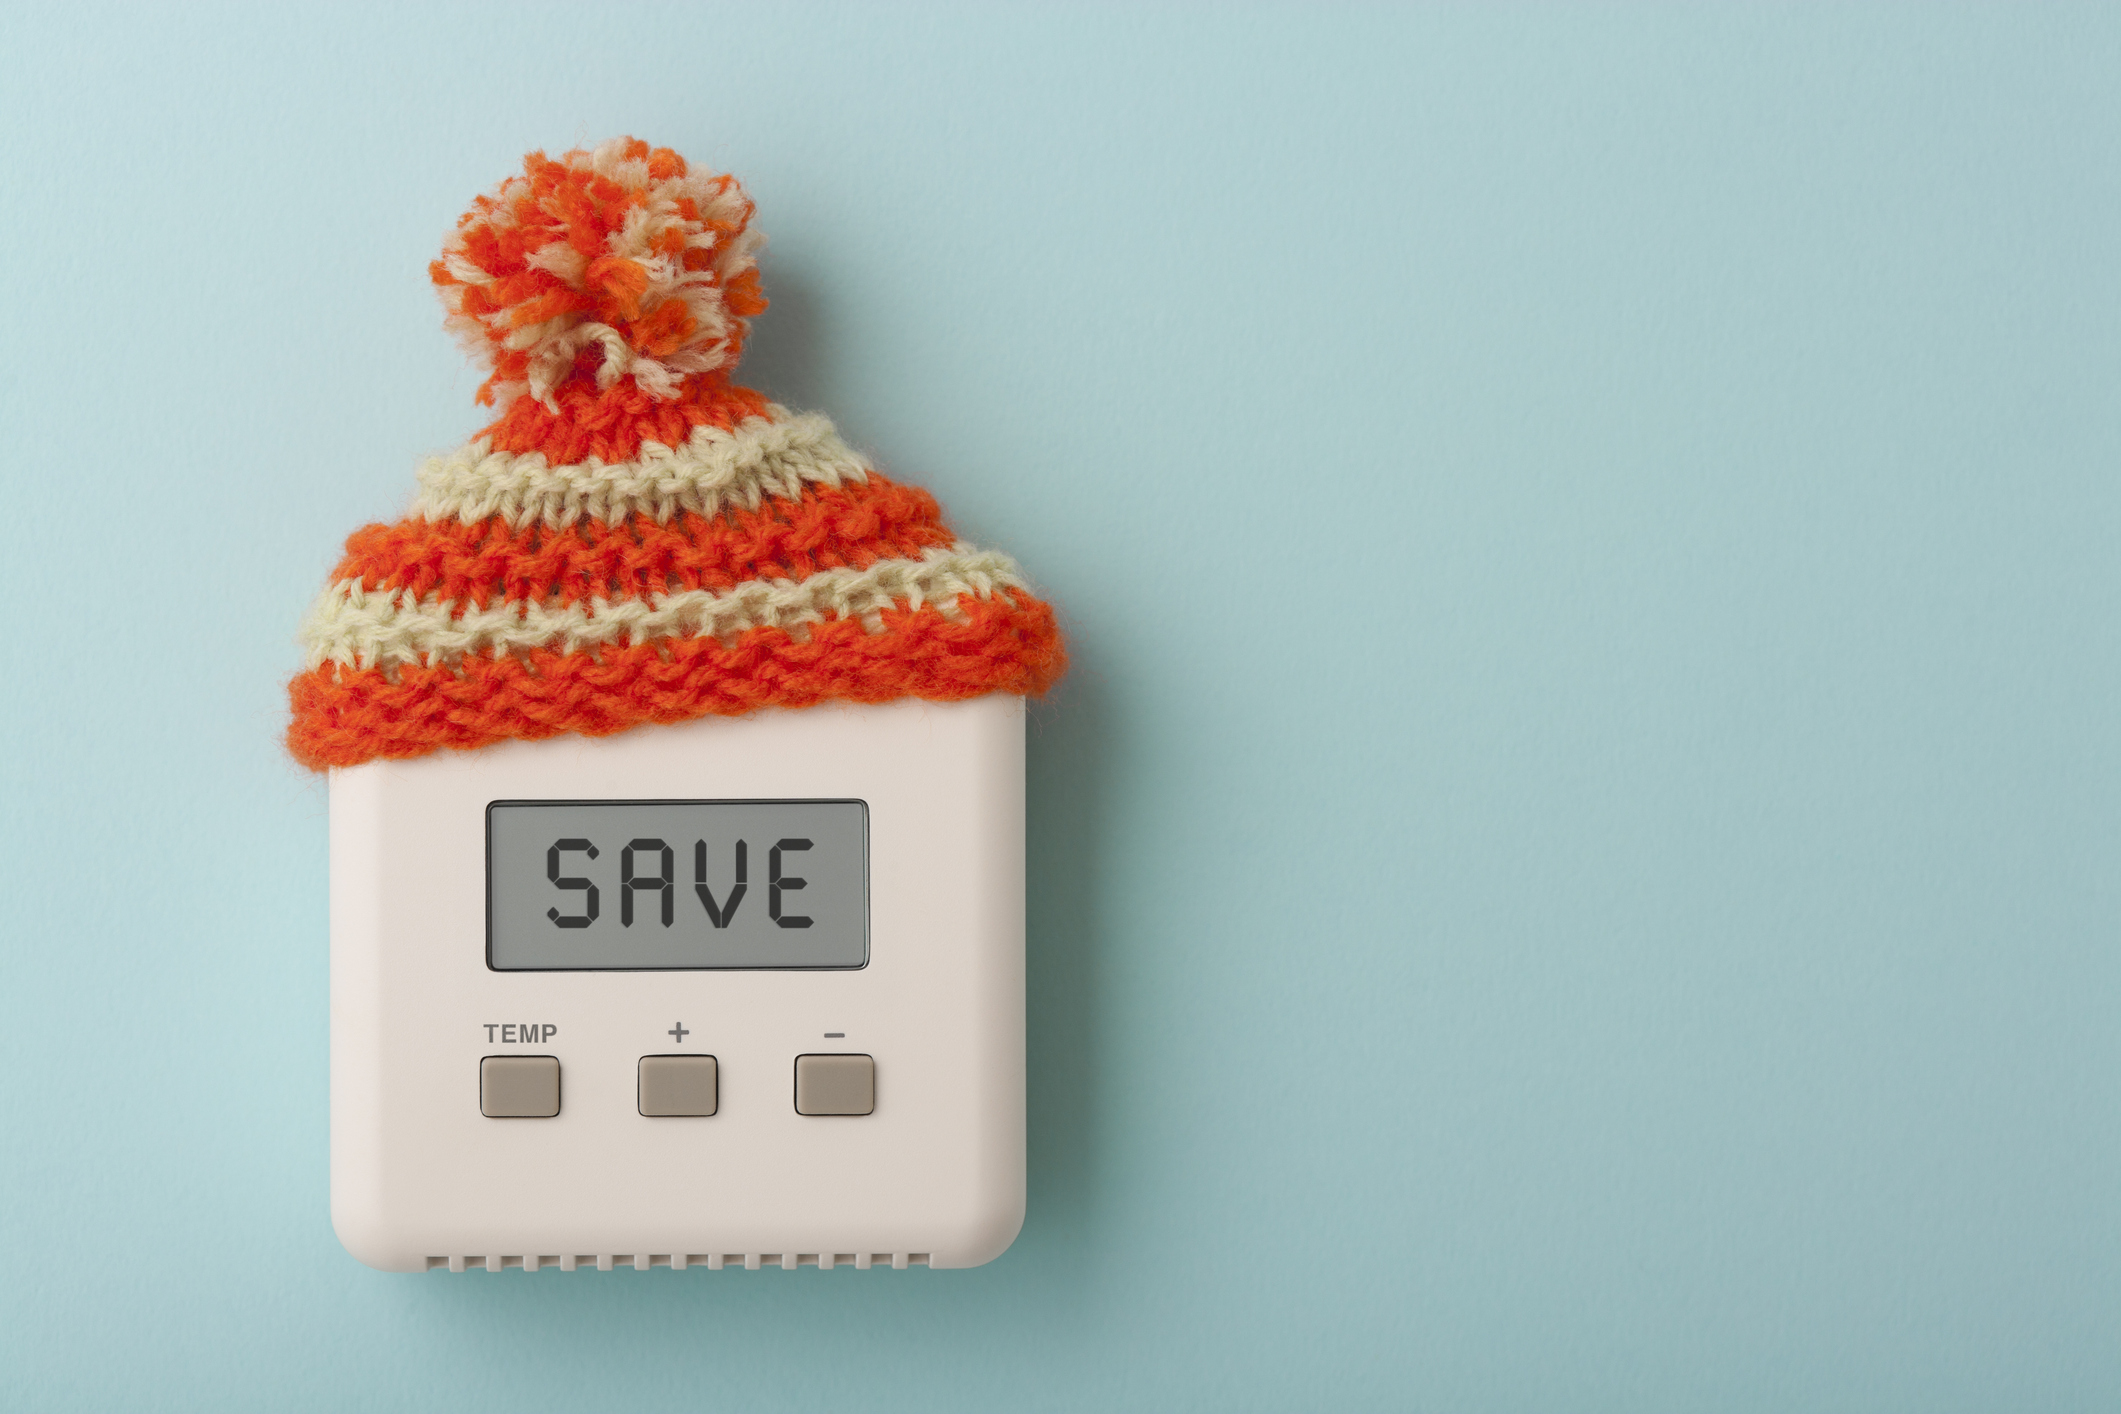 thermostat with hat on it